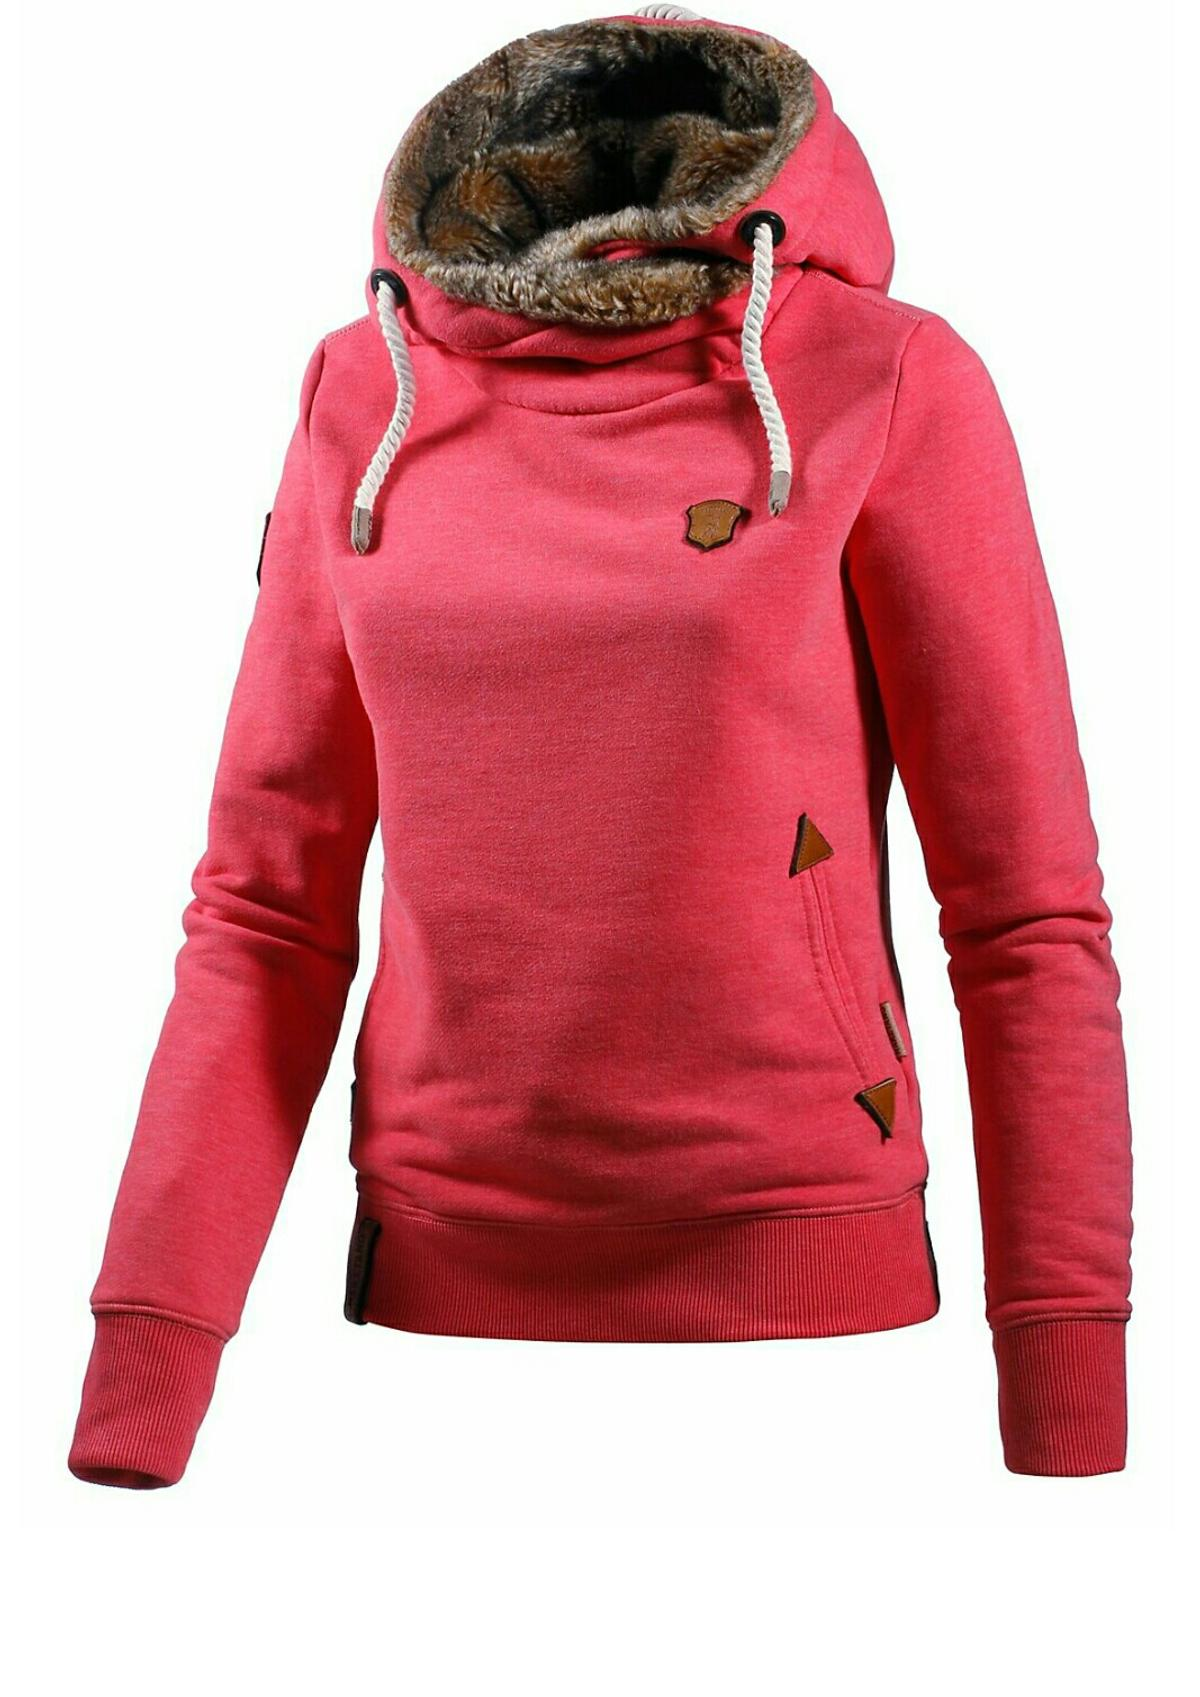 buy online 1702f 53aed Naketano Damen Pullover Pink mit Fell